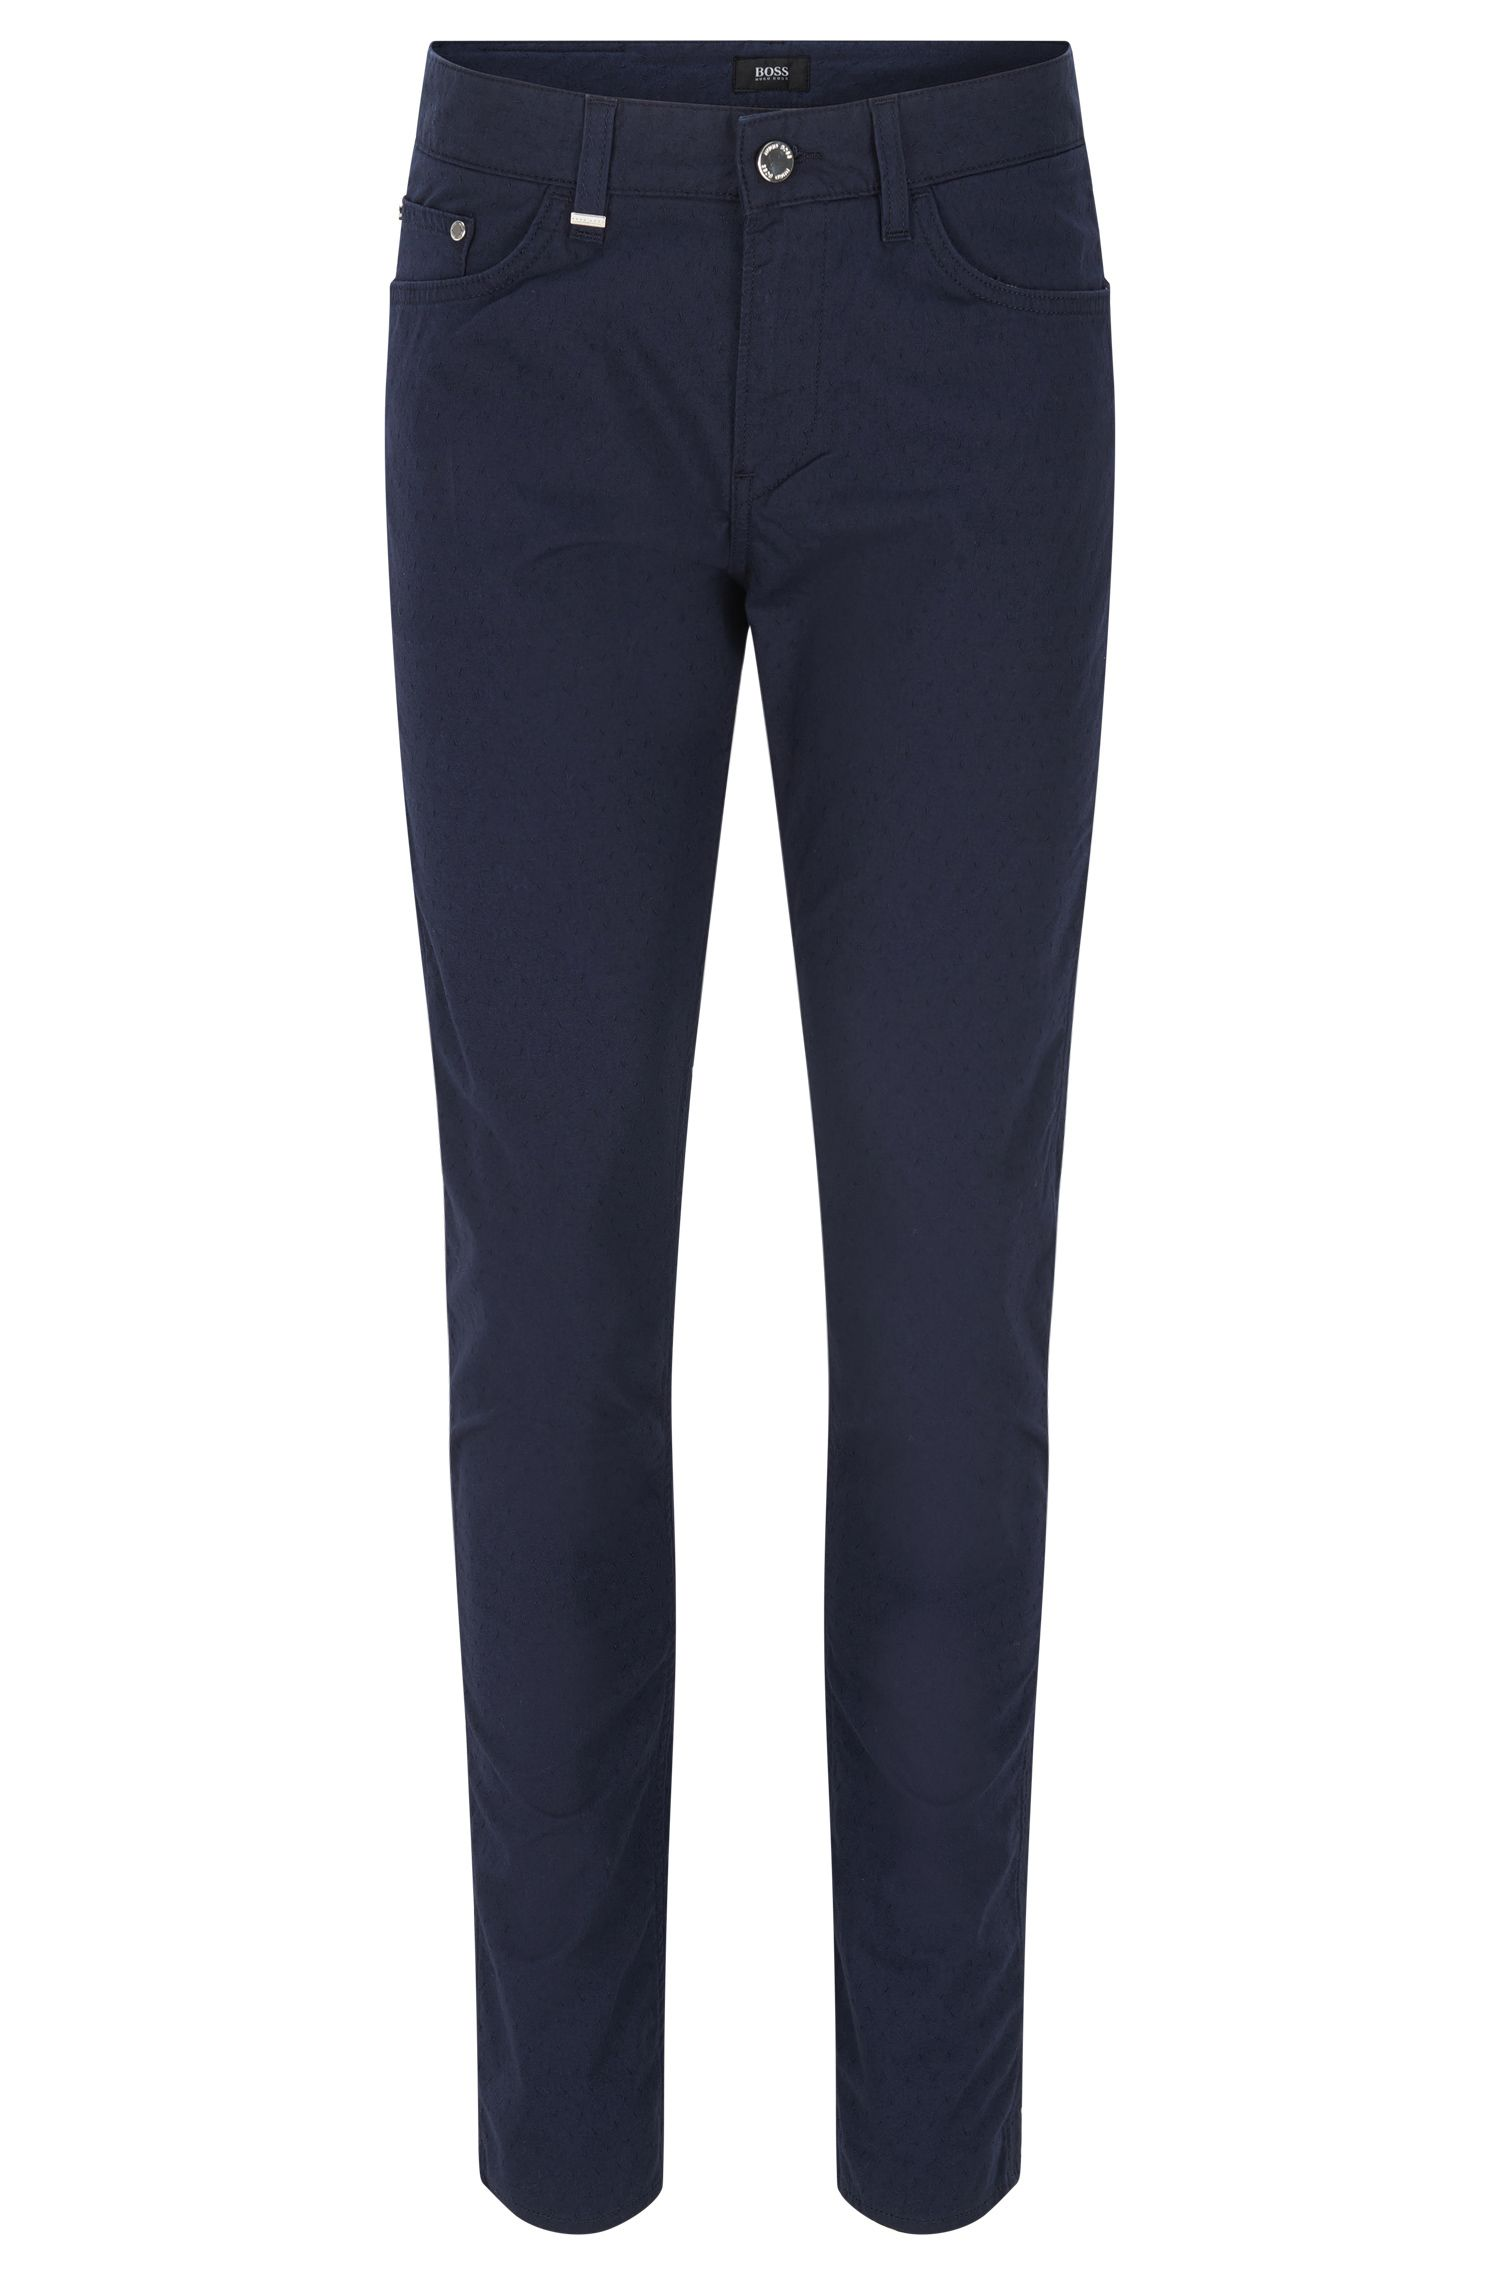 Jeans slim fit in denim con trama micro jacquard